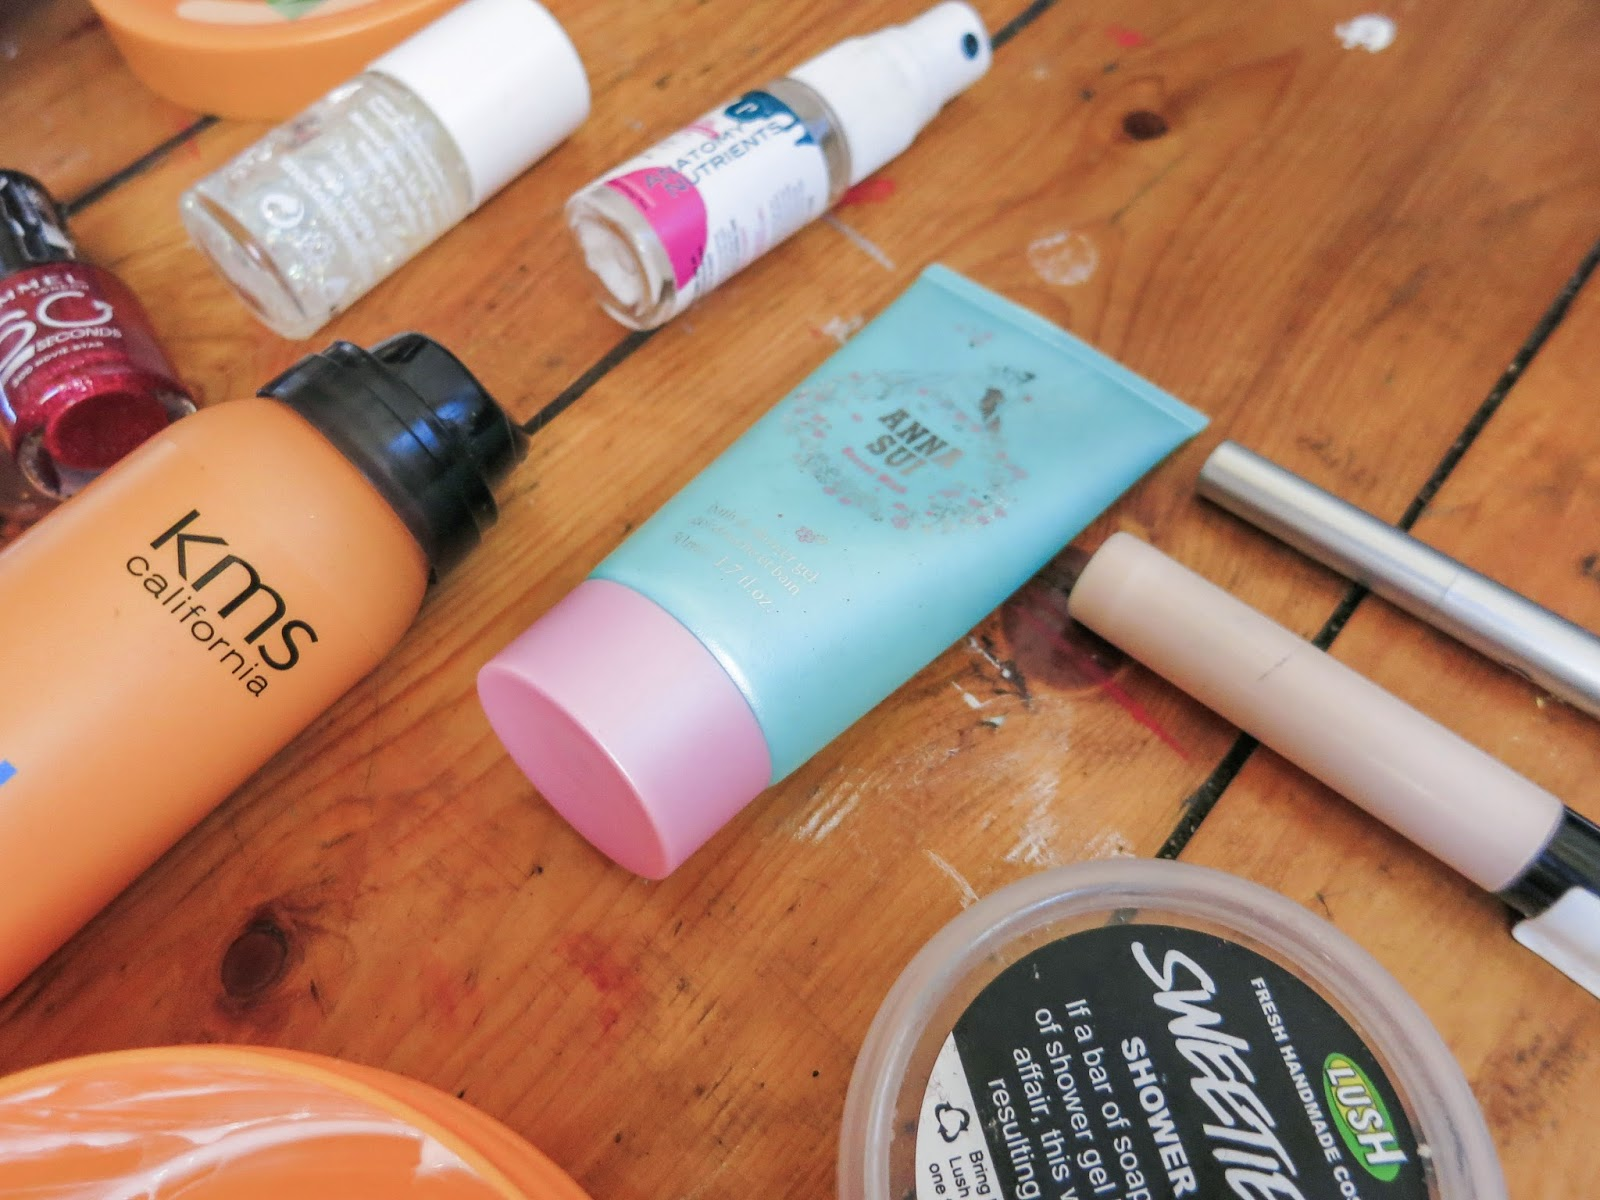 beauty empties makeup skincare hair care